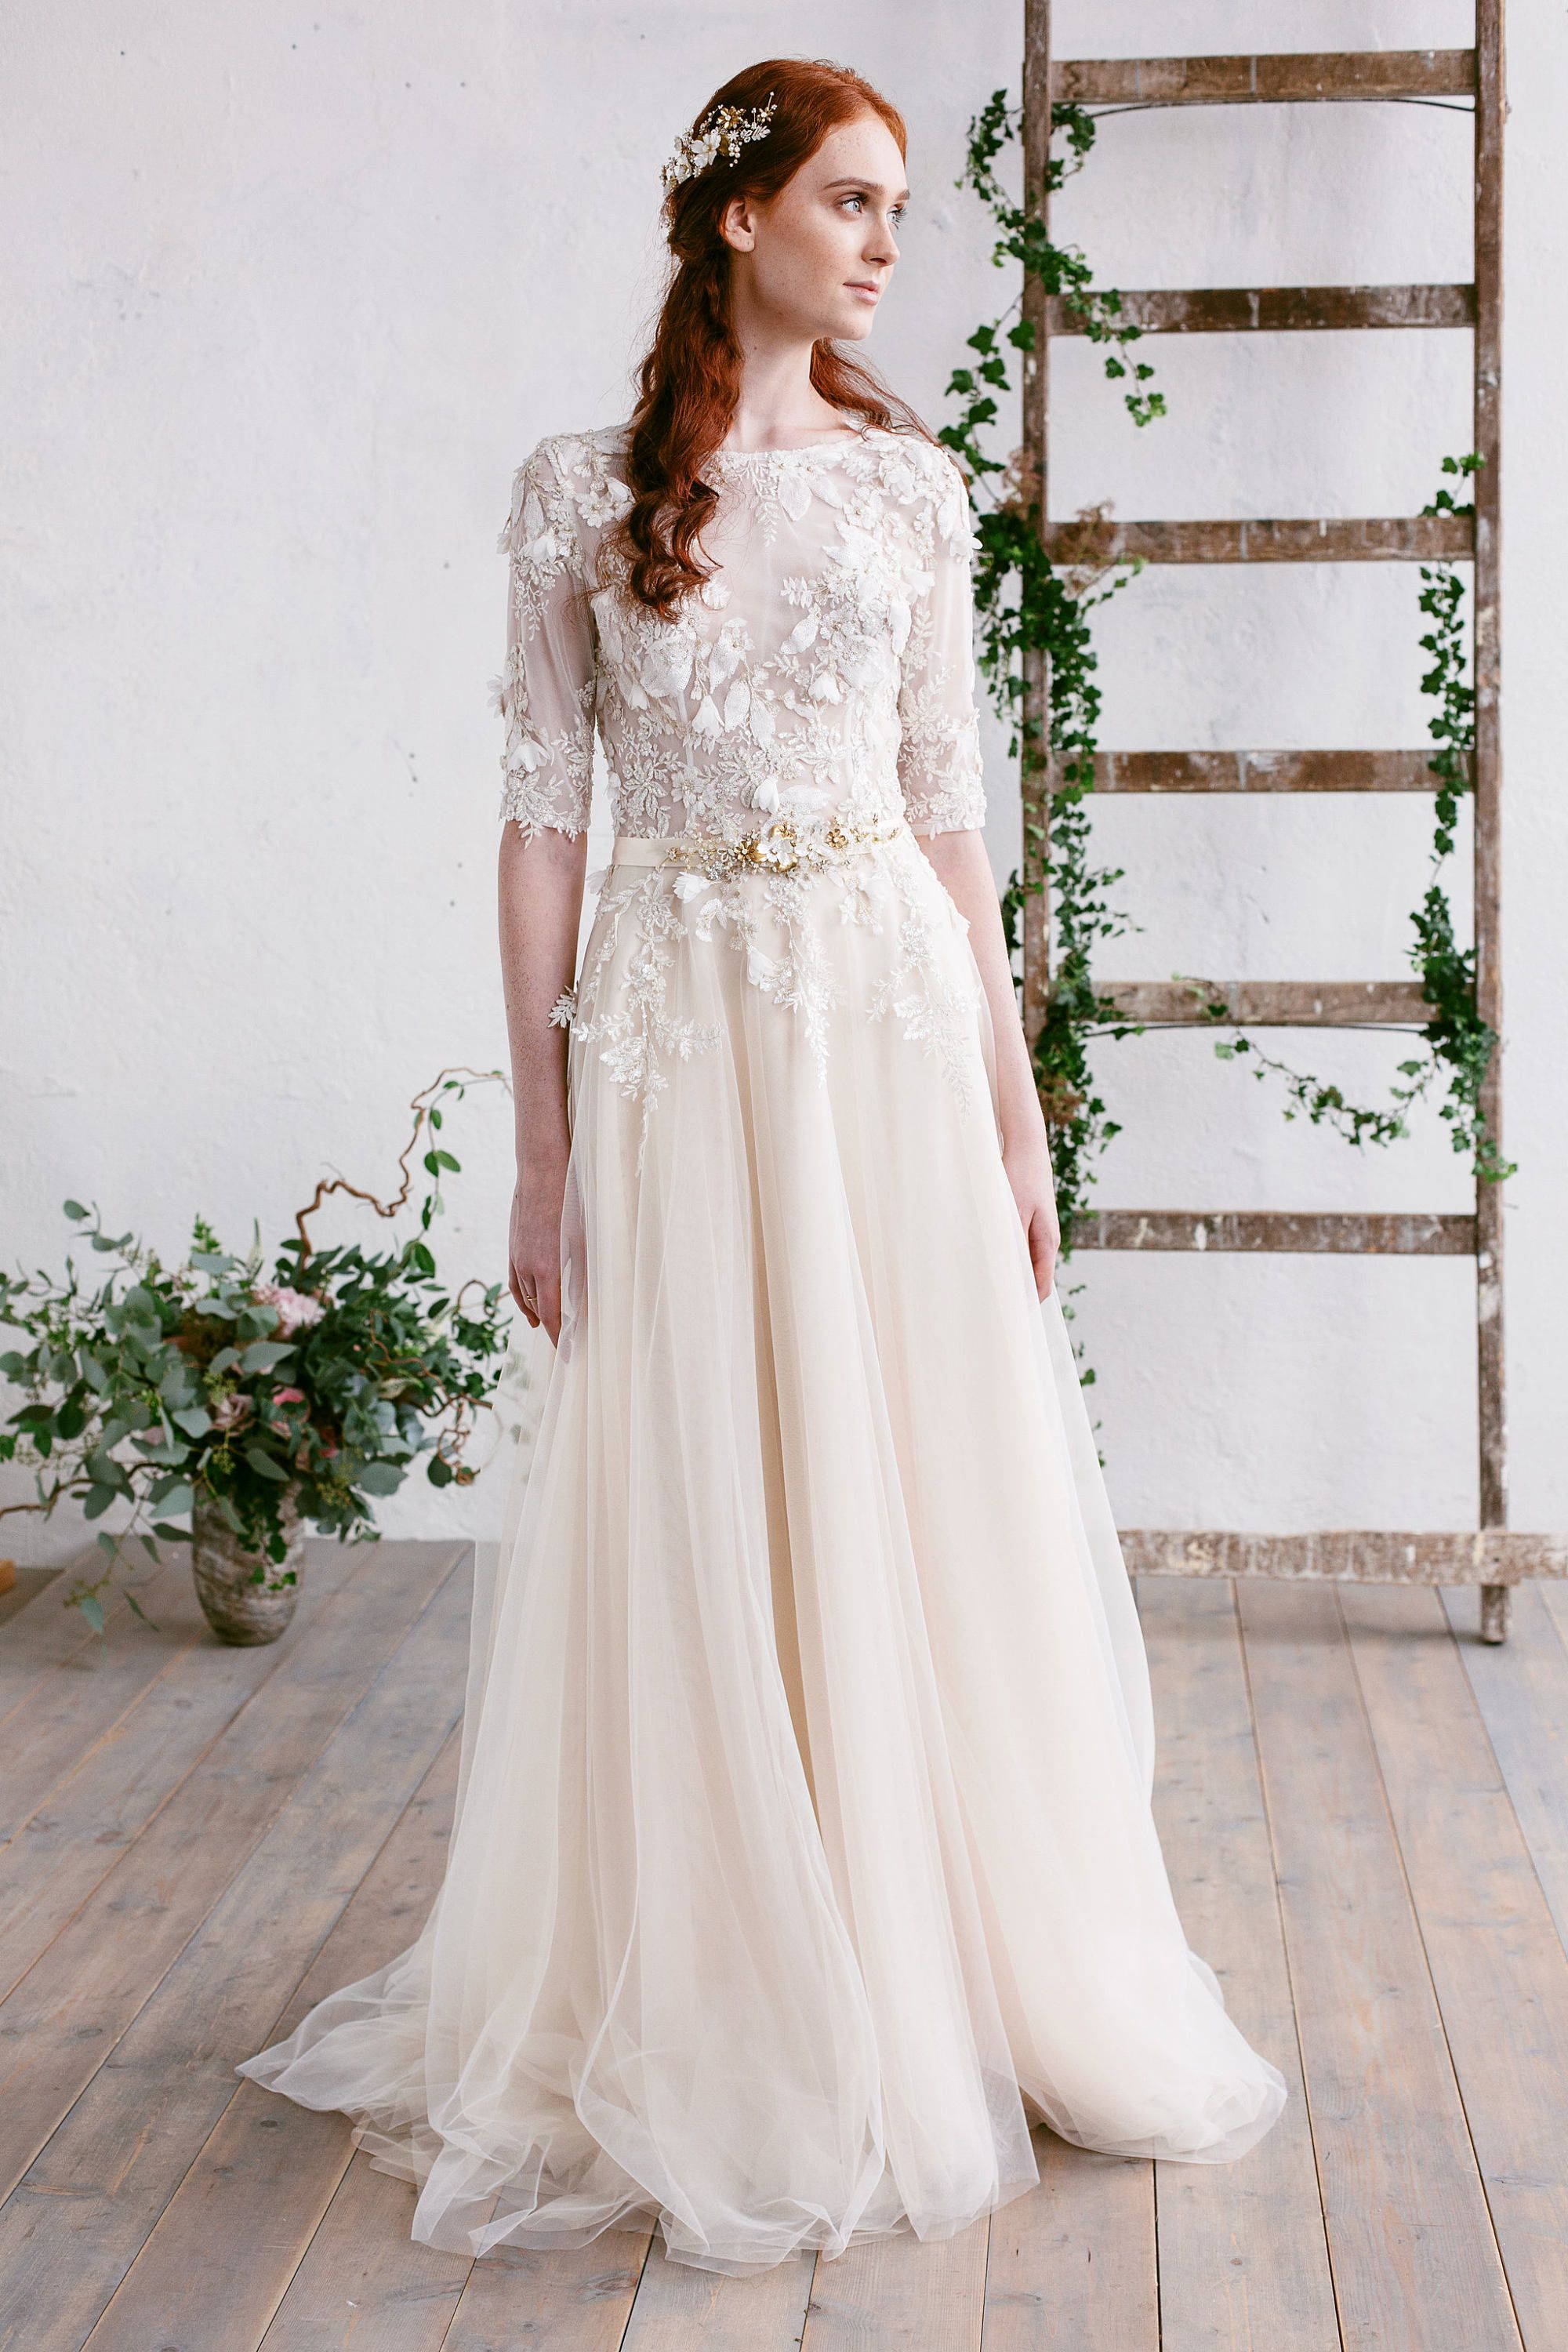 Lace wedding dress floral lace bridal gown low back gown nude